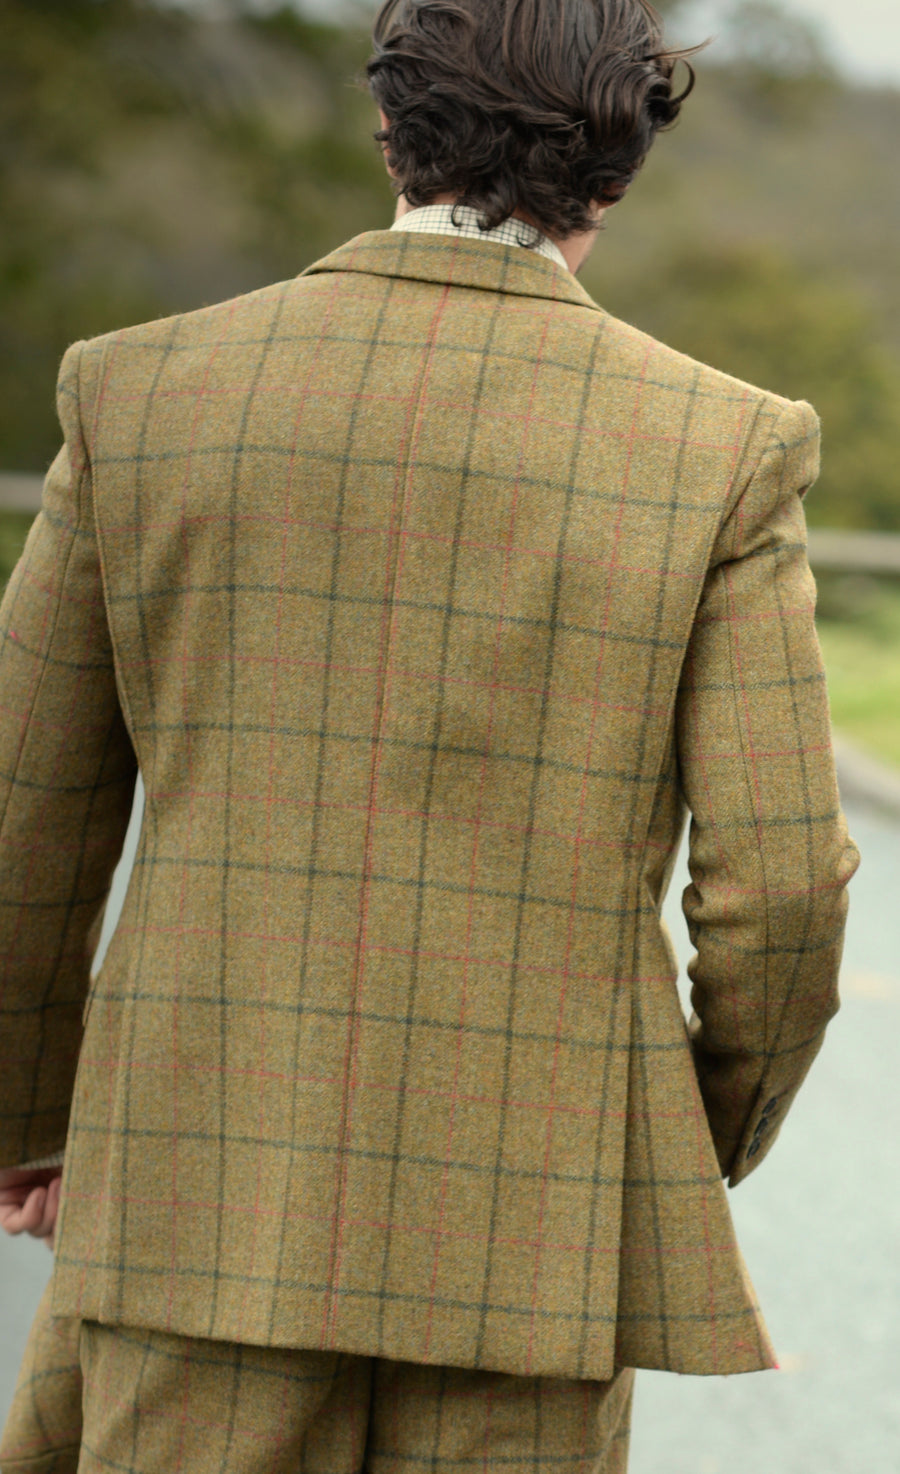 Action Back Gamekeepers Jacket - Coverdale Tweed